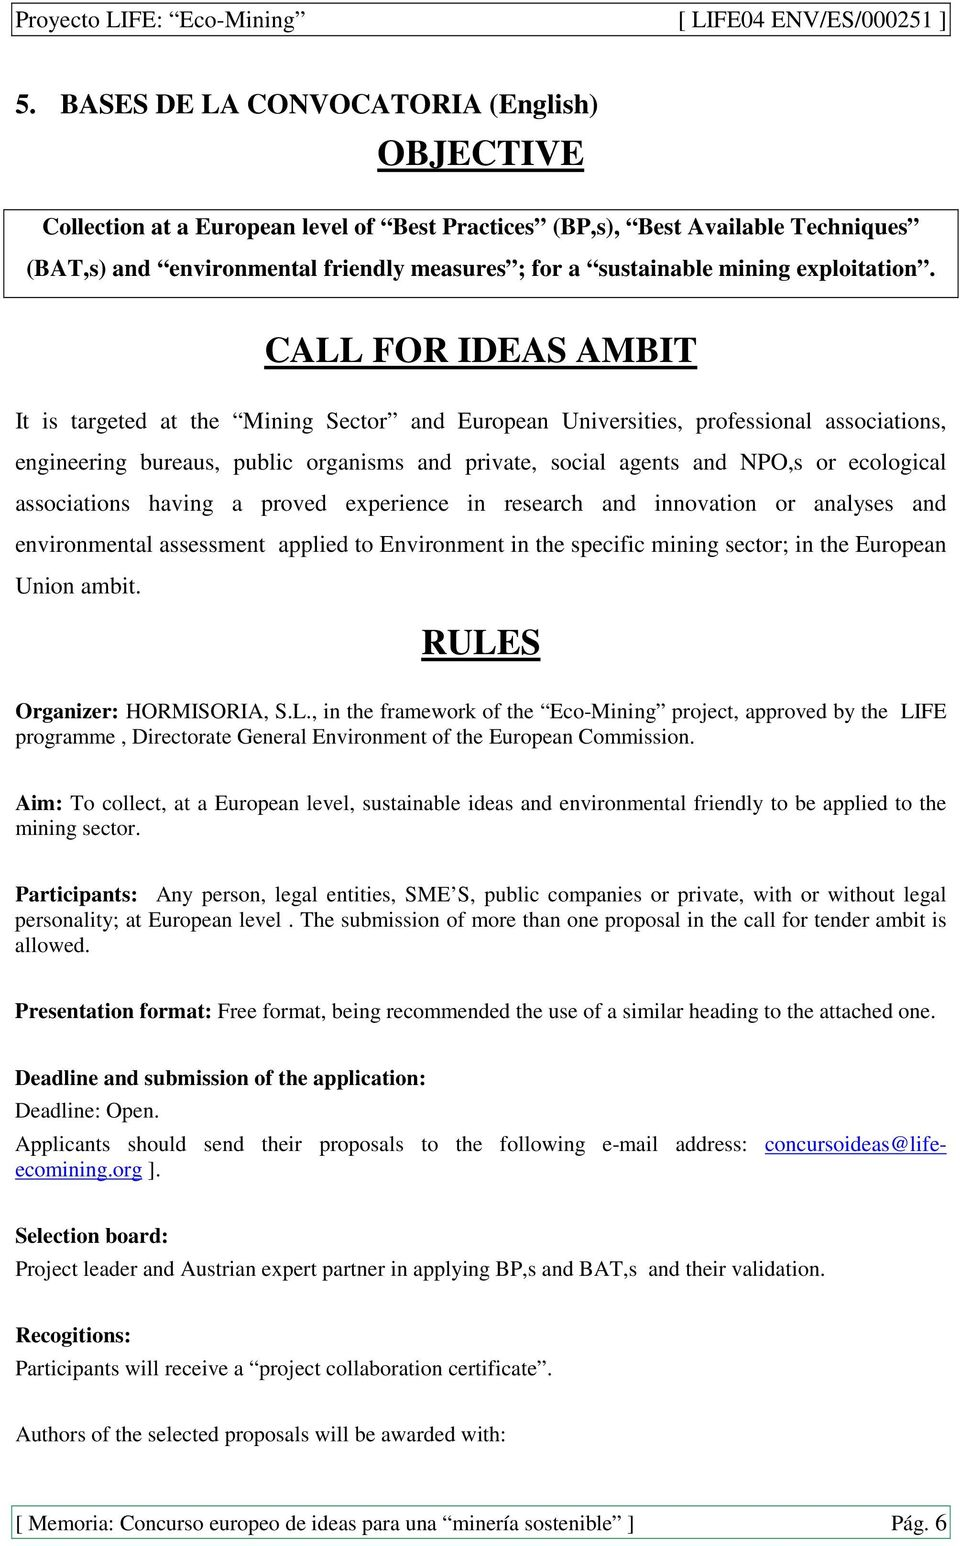 CALL FOR IDEAS AMBIT It is targeted at the Mining Sector and European Universities, professional associations, engineering bureaus, public organisms and private, social agents and NPO,s or ecological